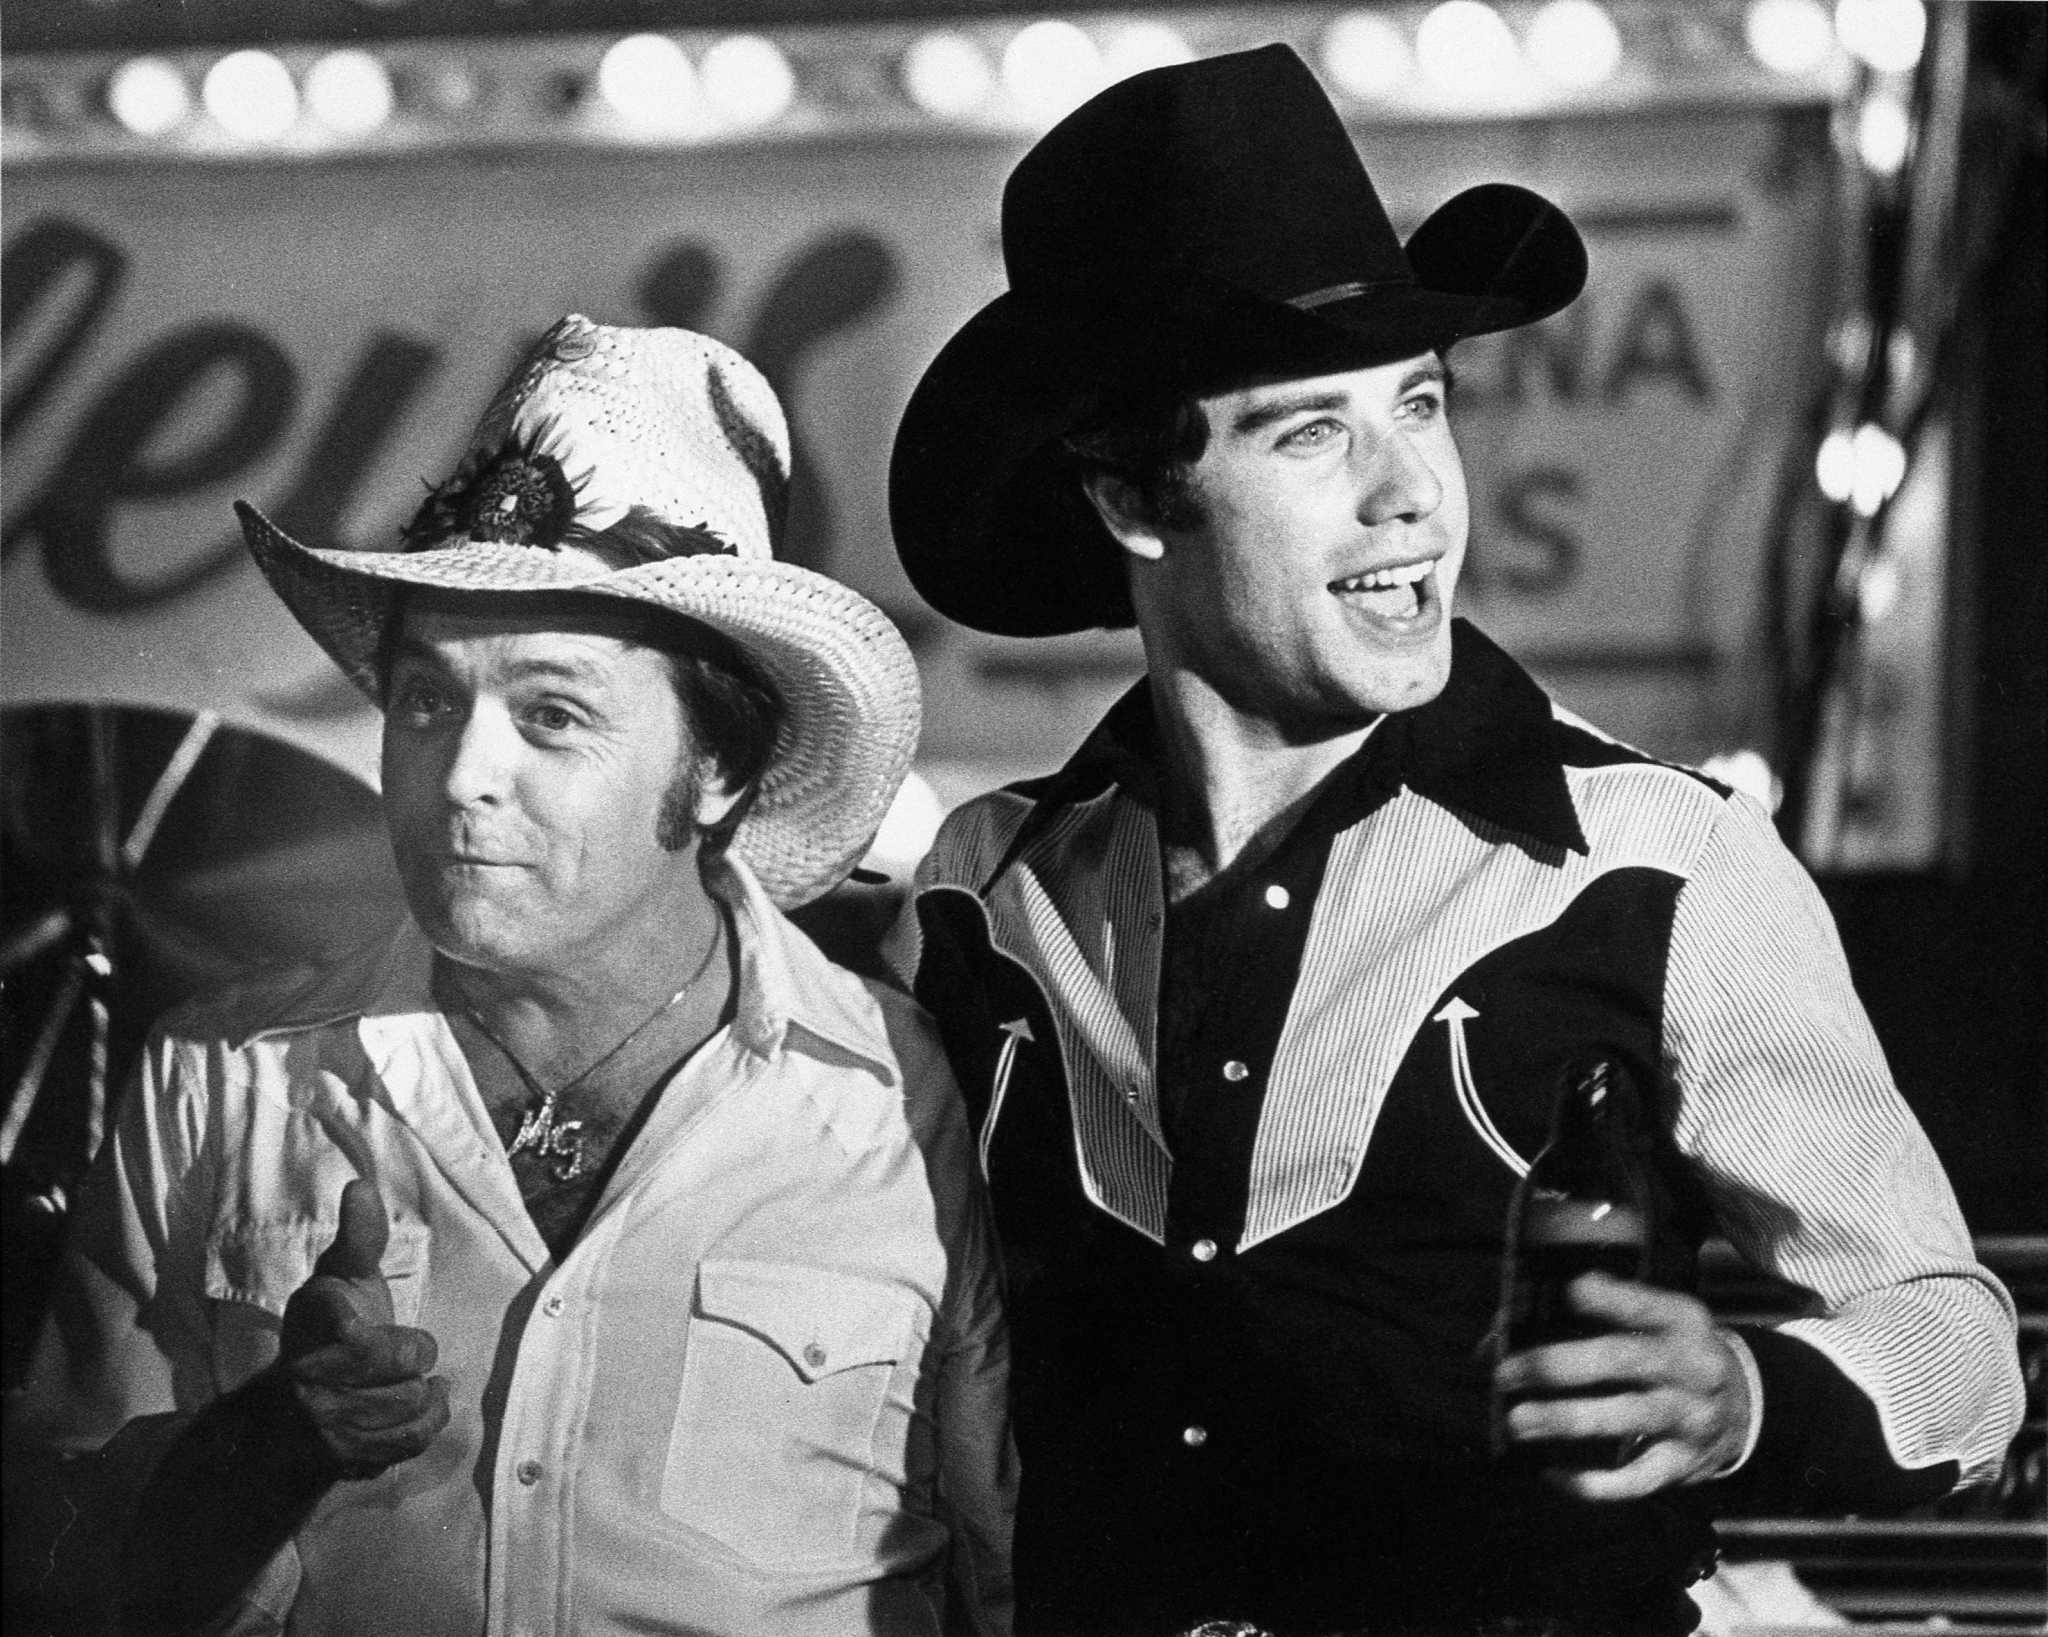 original urban cowboys recall their wild ride with fame